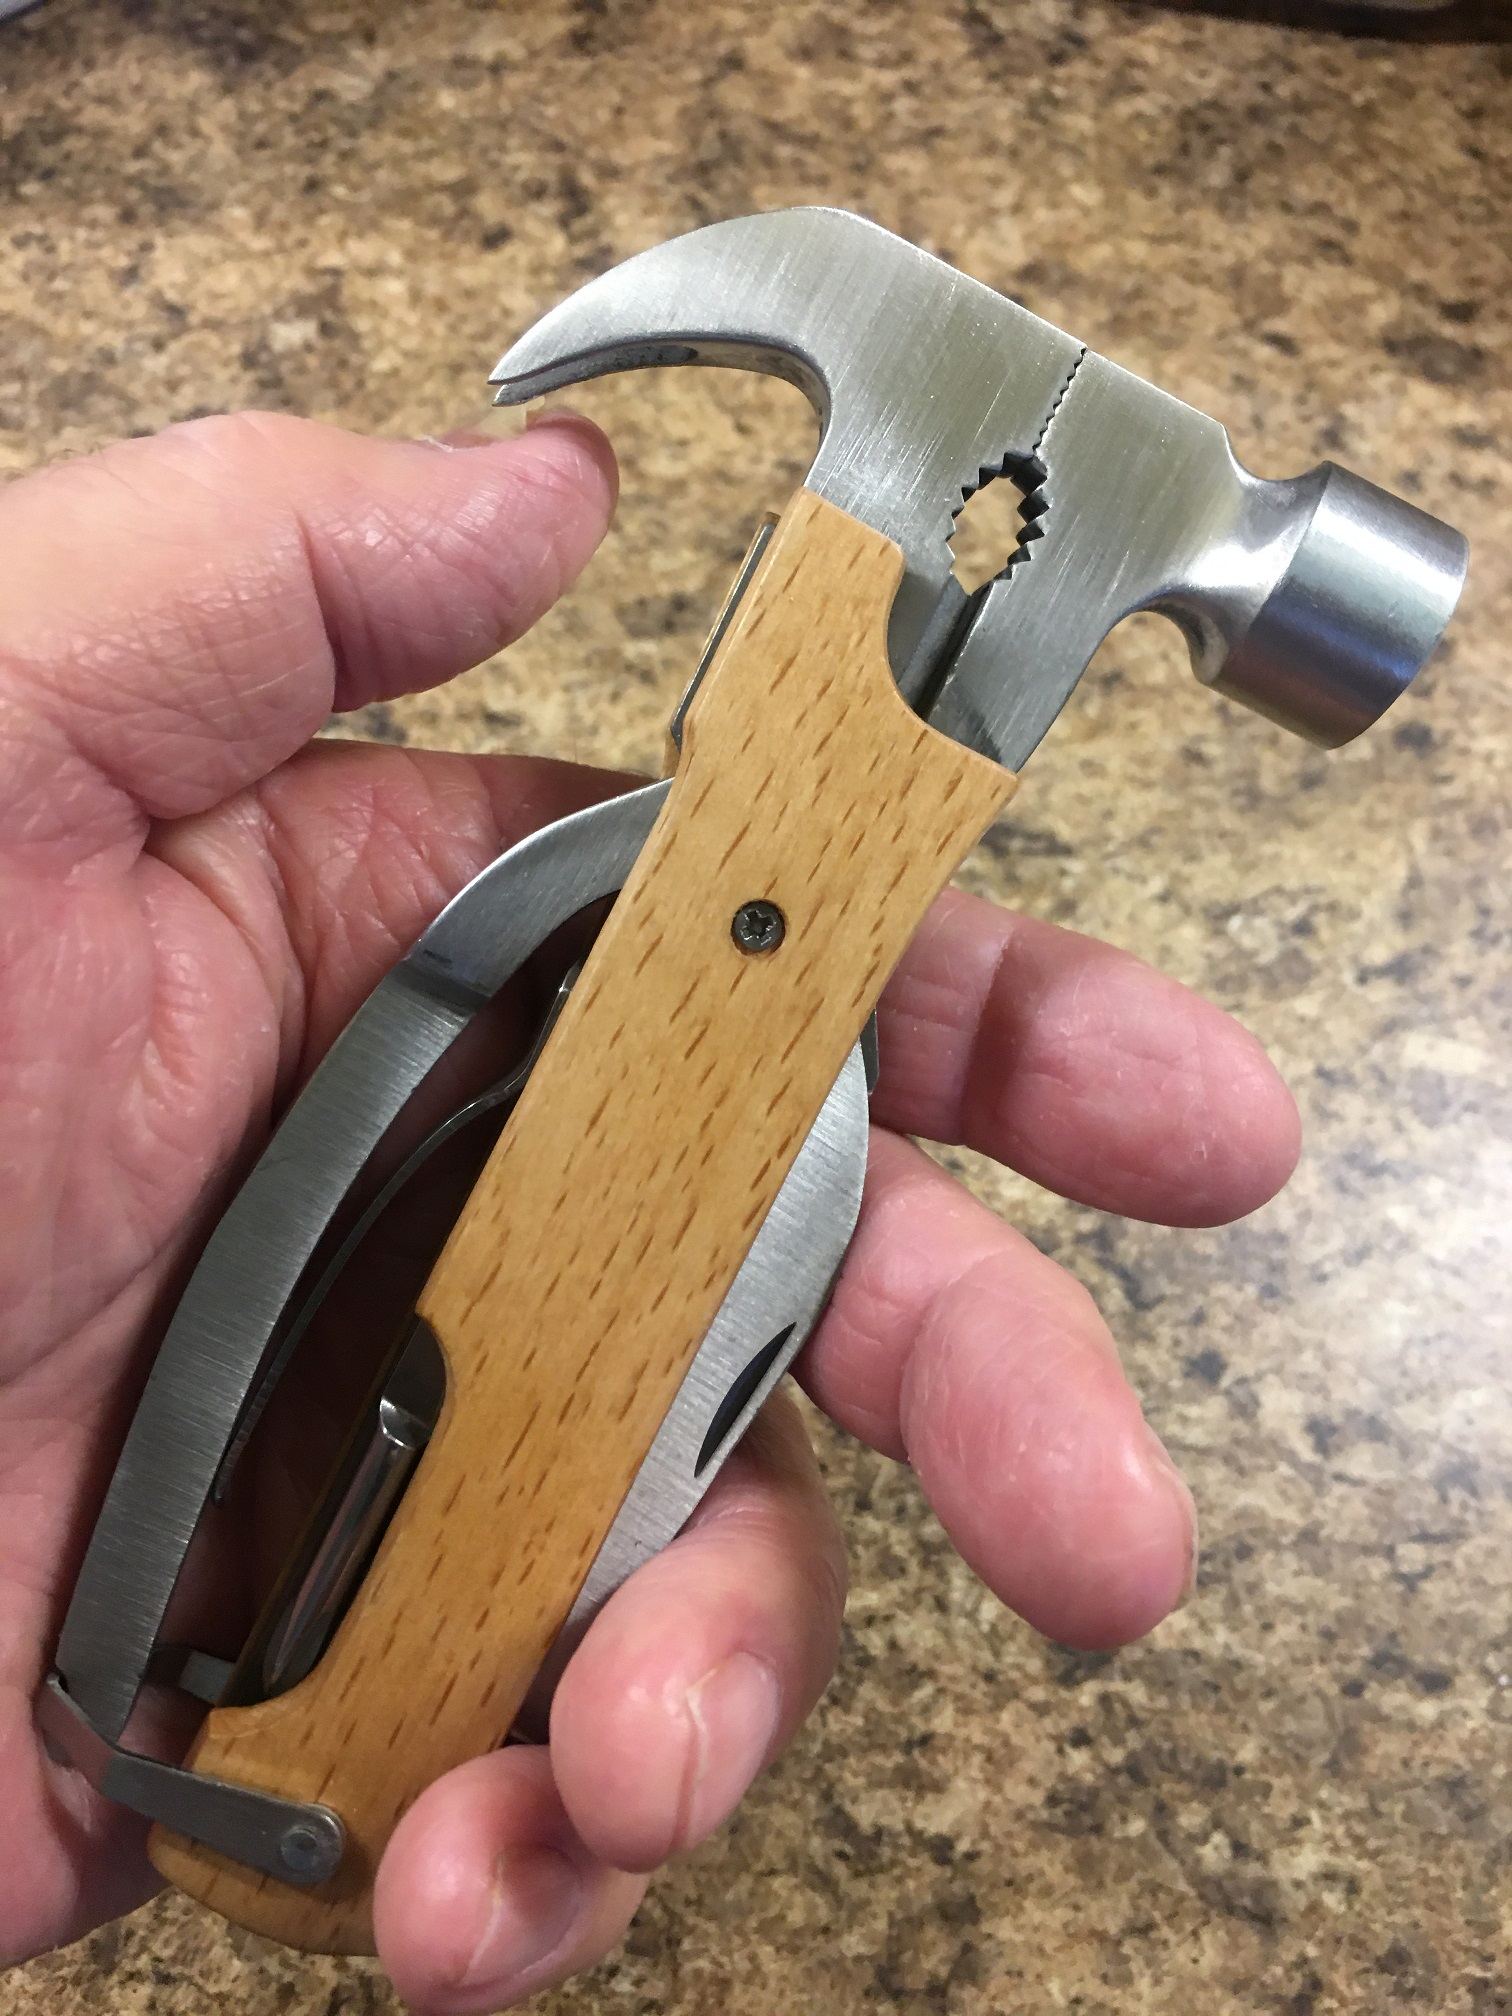 KUSONKEY Multitool